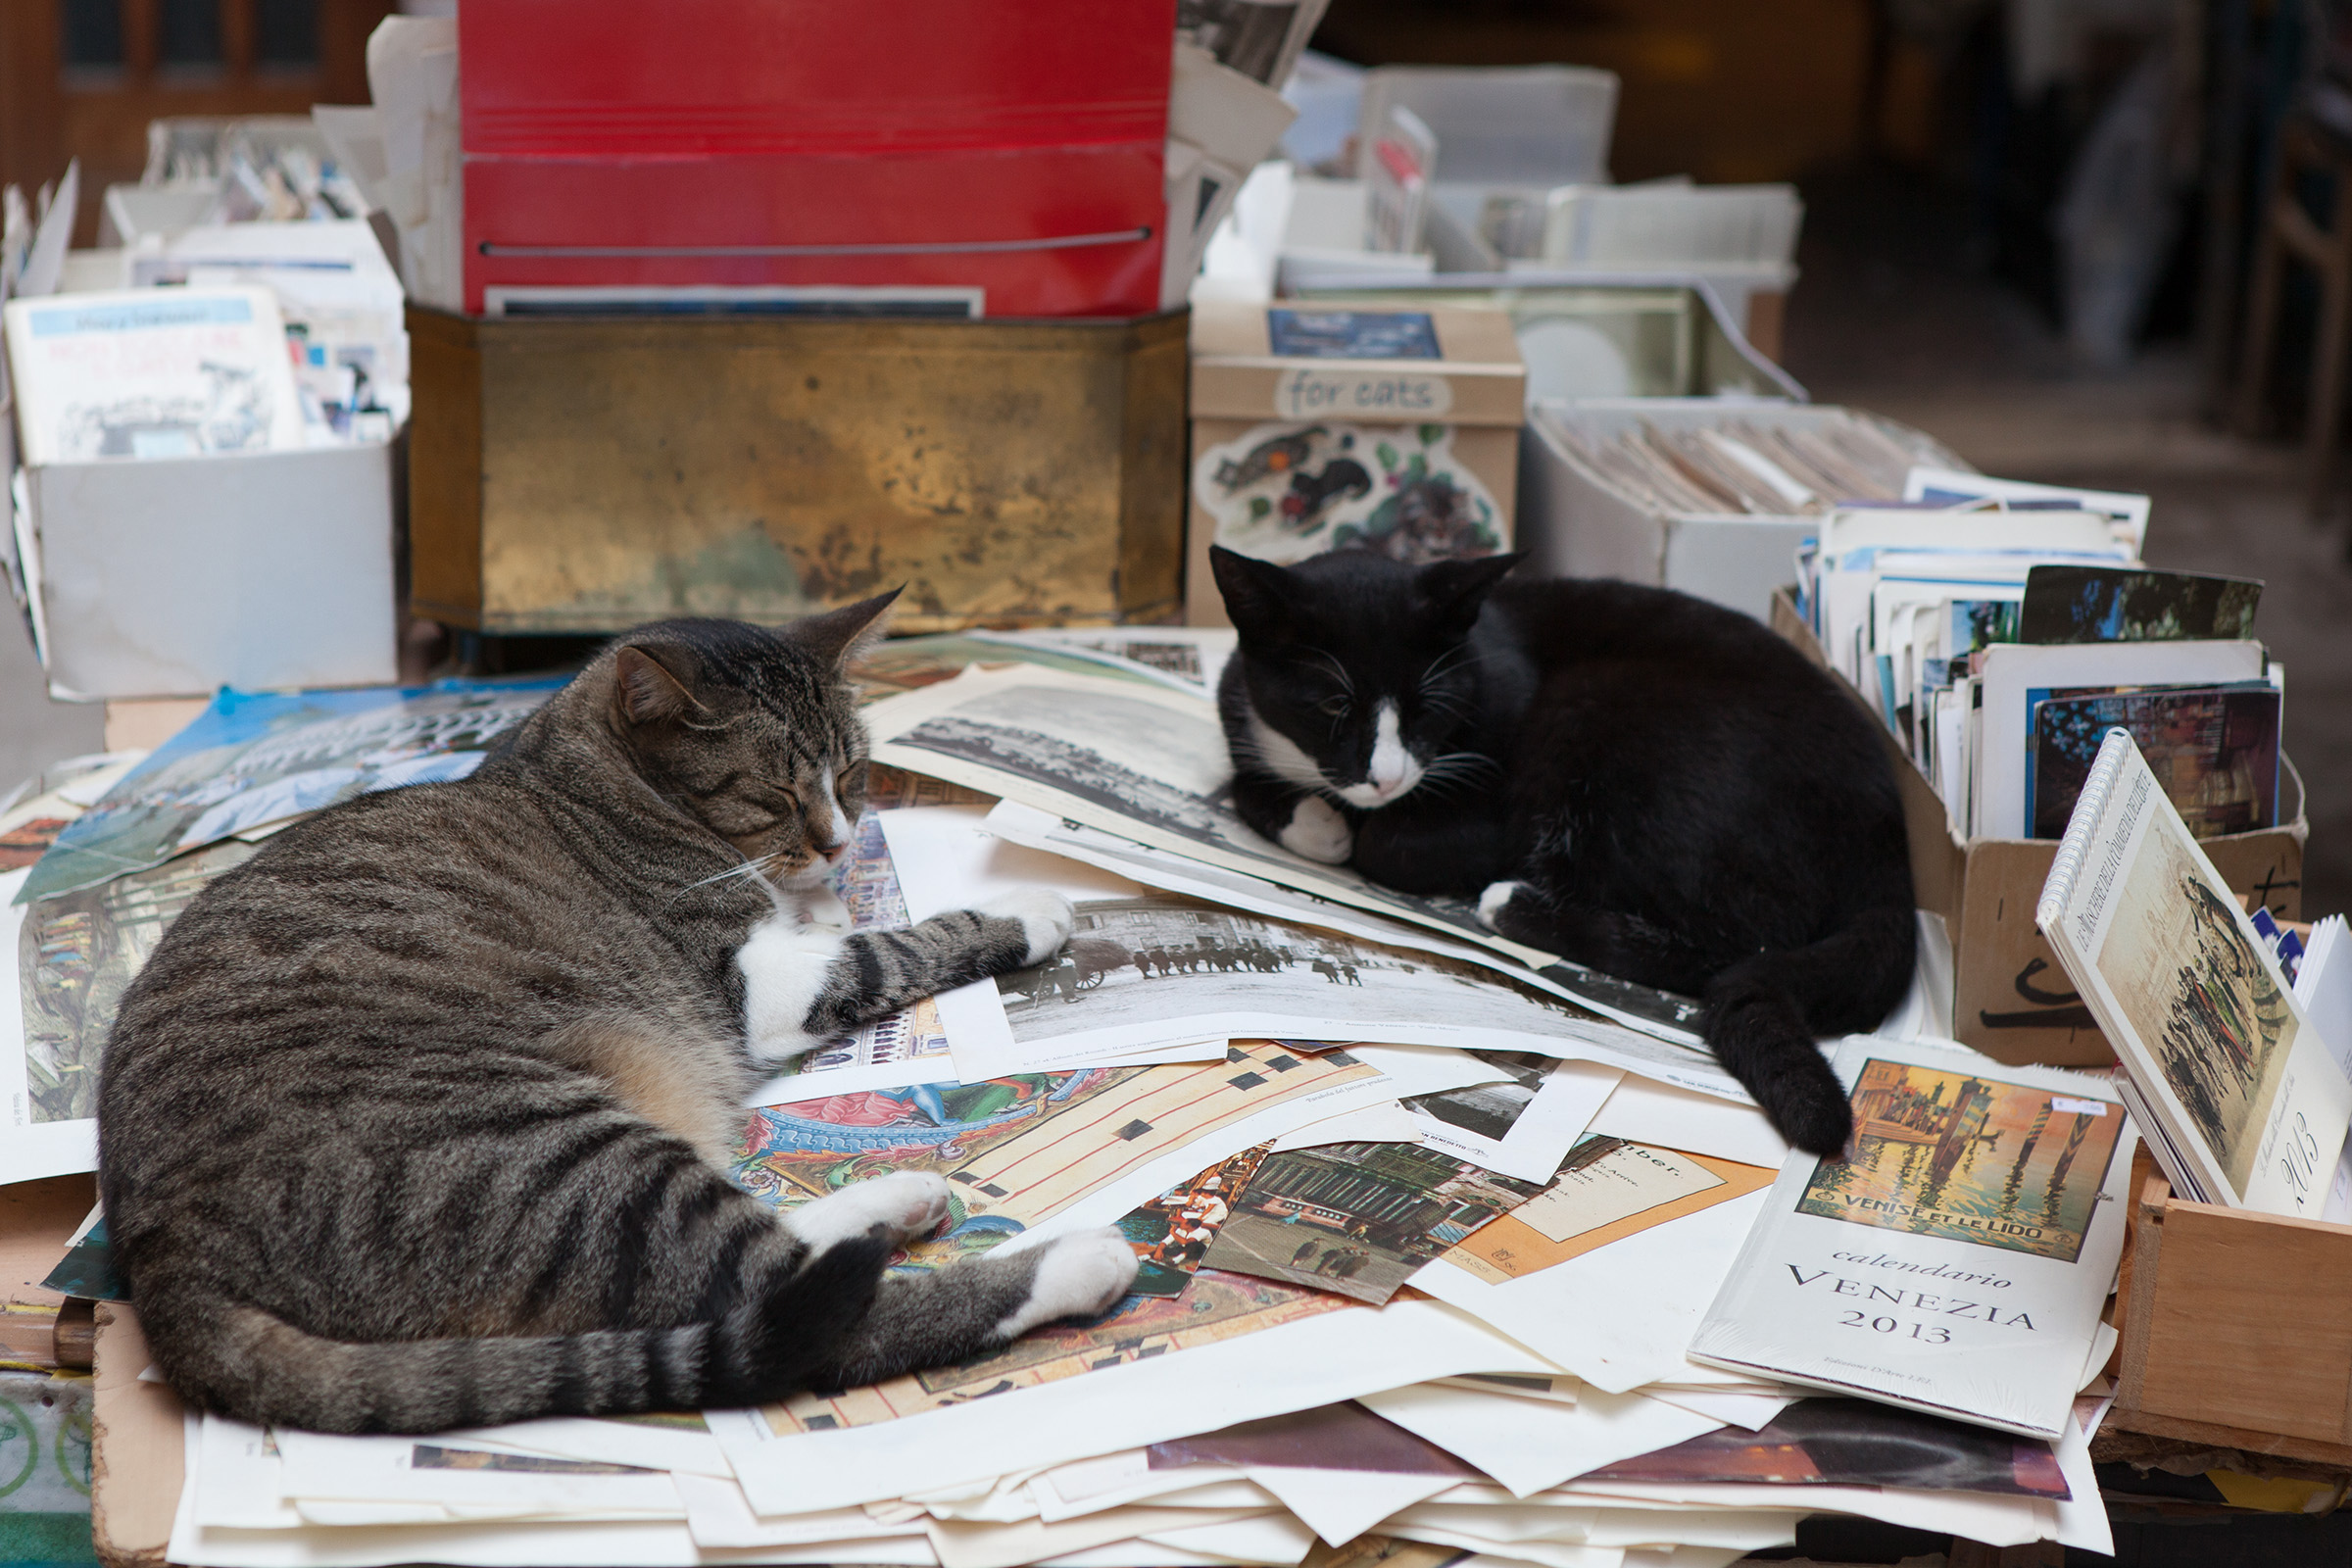 Cats and Books, Animal, Portrait, Library, Literature, HQ Photo